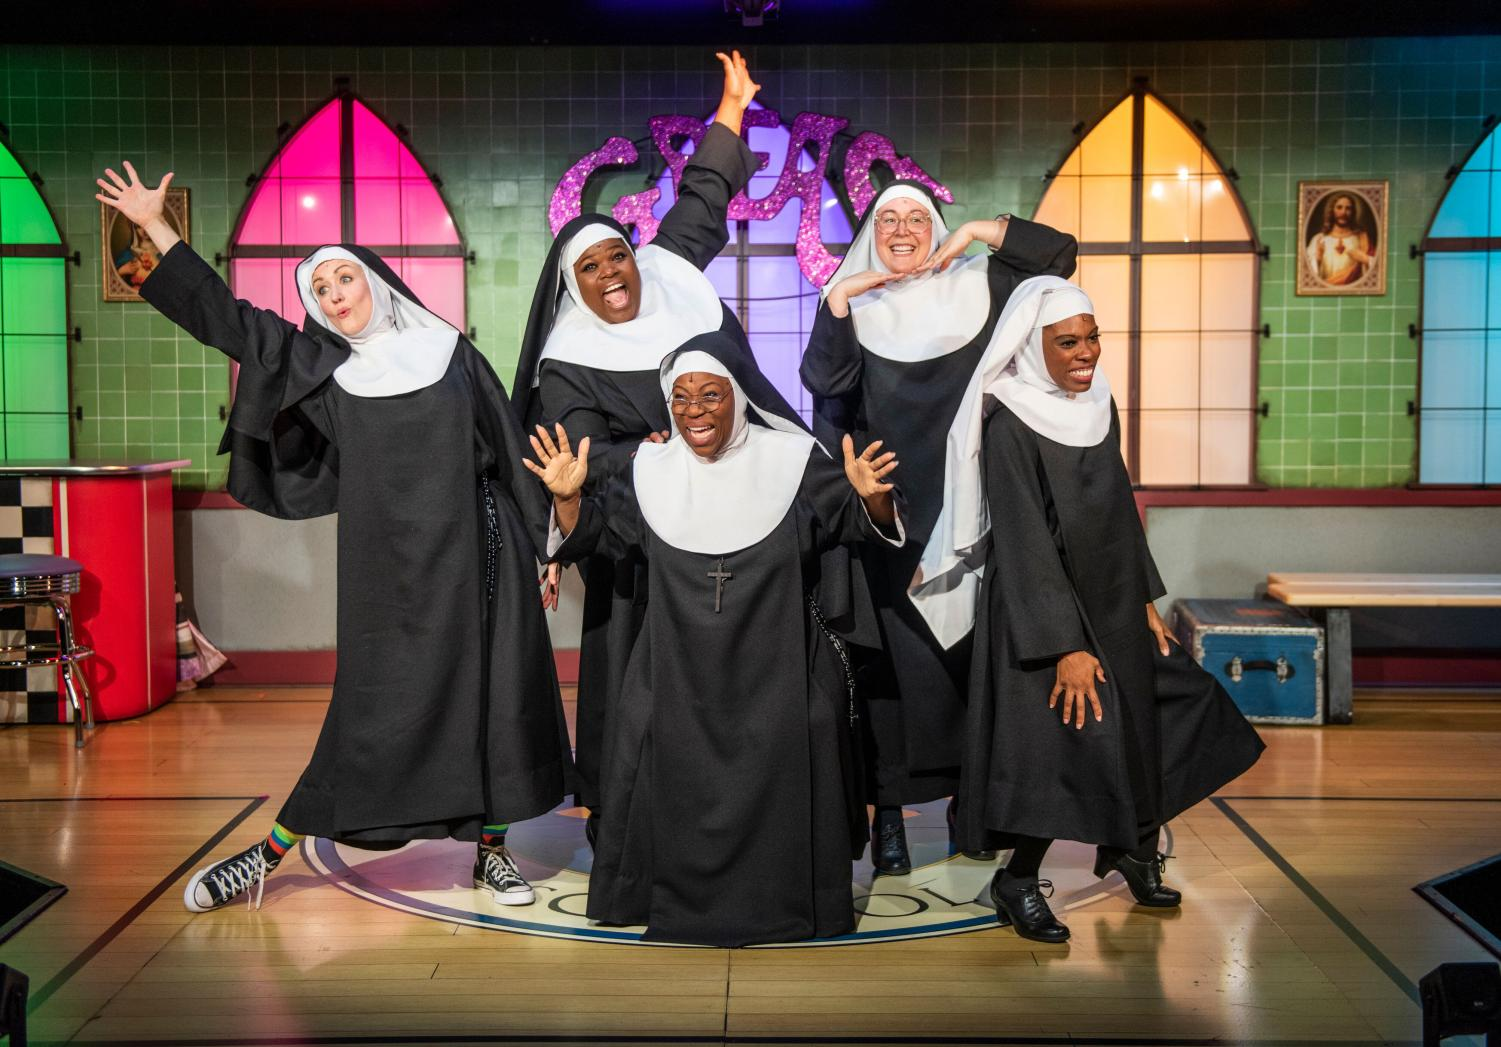 The cast of irreverent, comedic nuns includes, listed from left to right, actors Kelley Faulkner, Lachrisa Grandberry, Melody Betts, Veronica Garza and Candace Thomas.